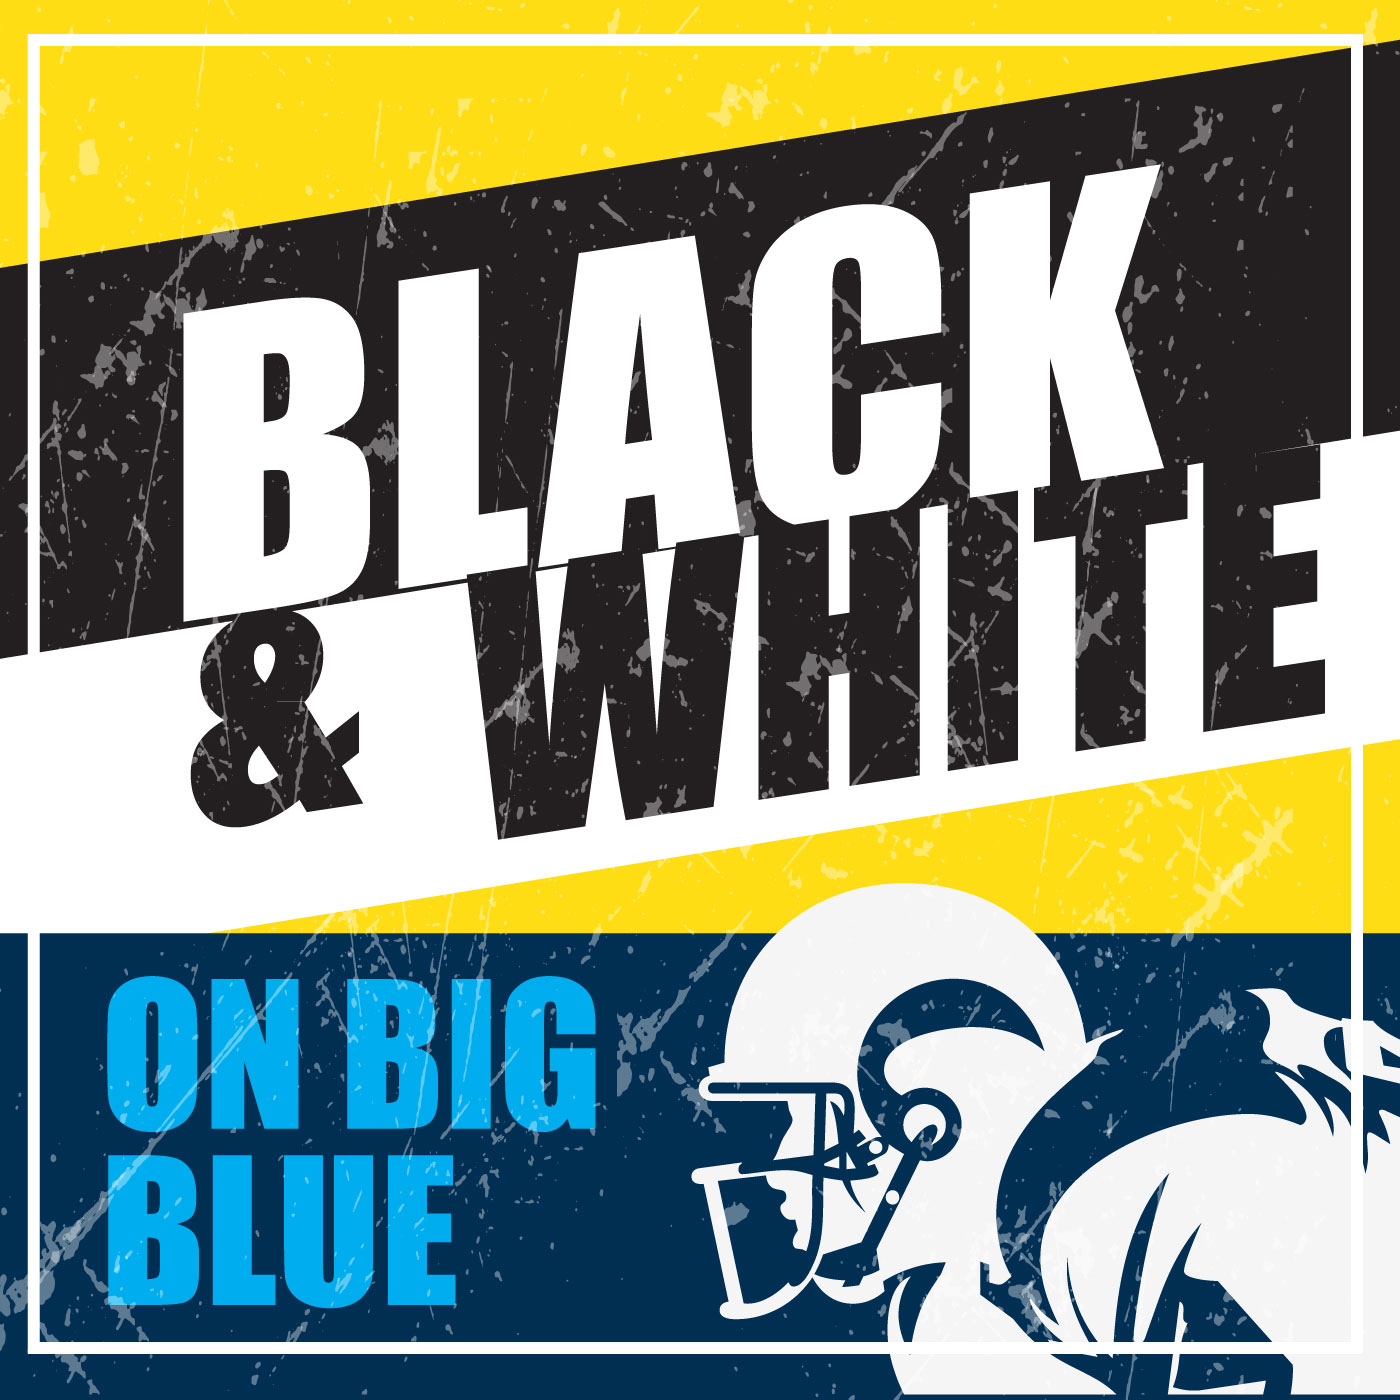 Episode 33 Black And White On Big Blue